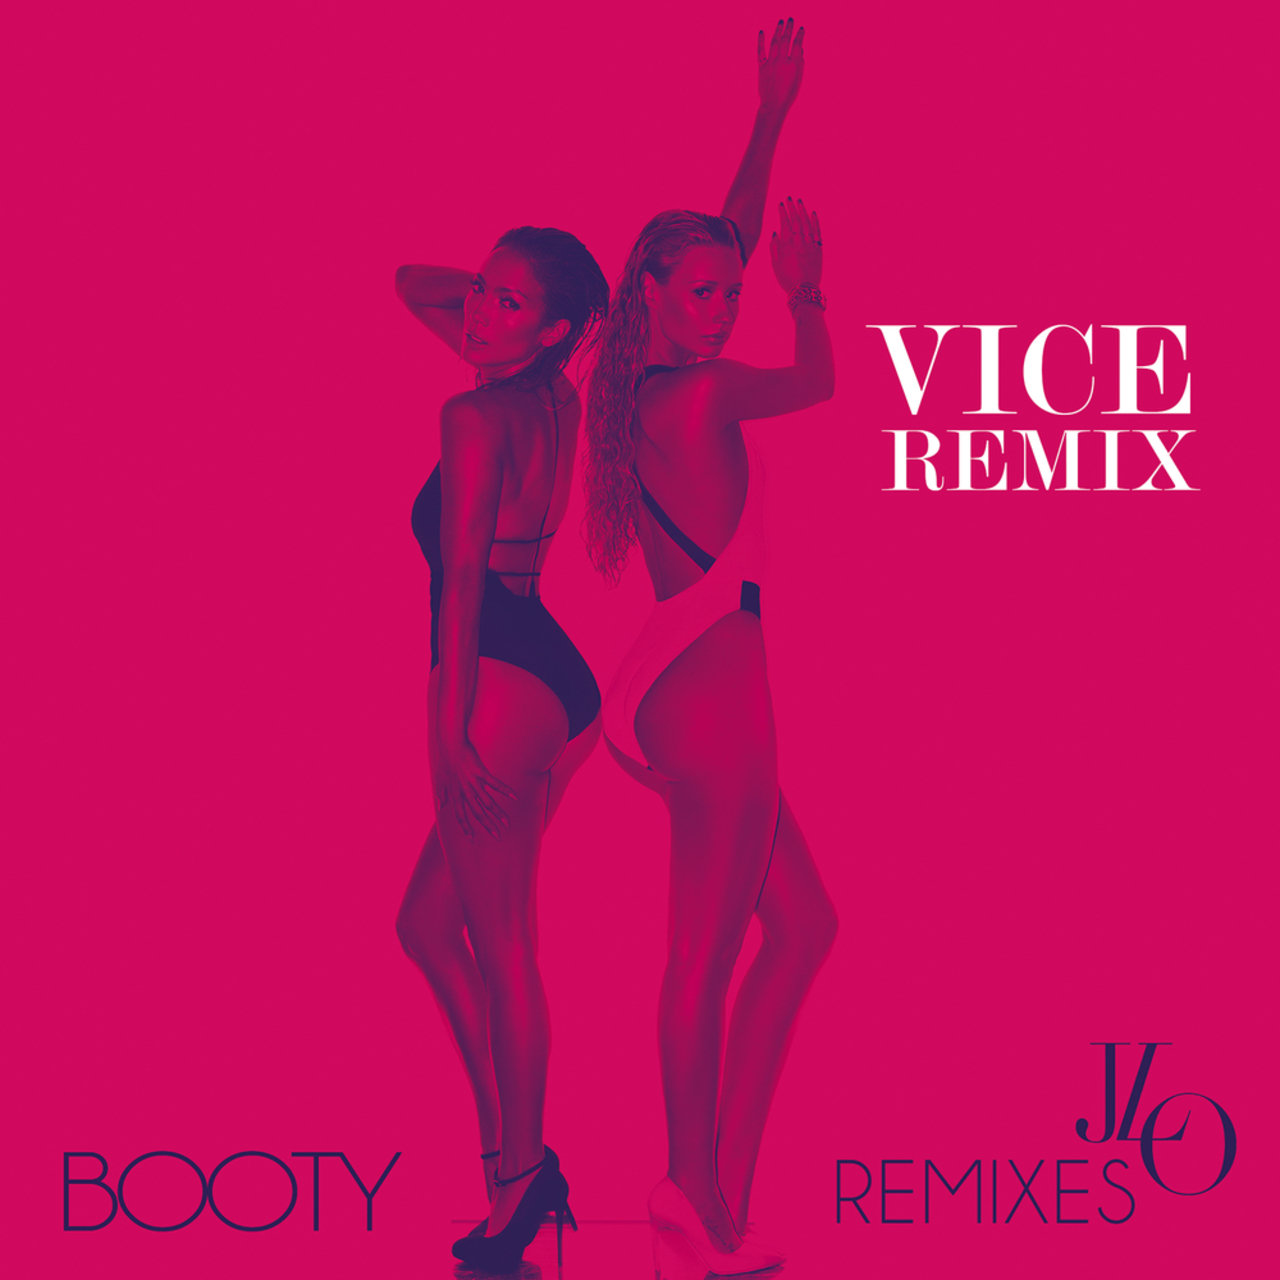 Booty (Vice Remix)